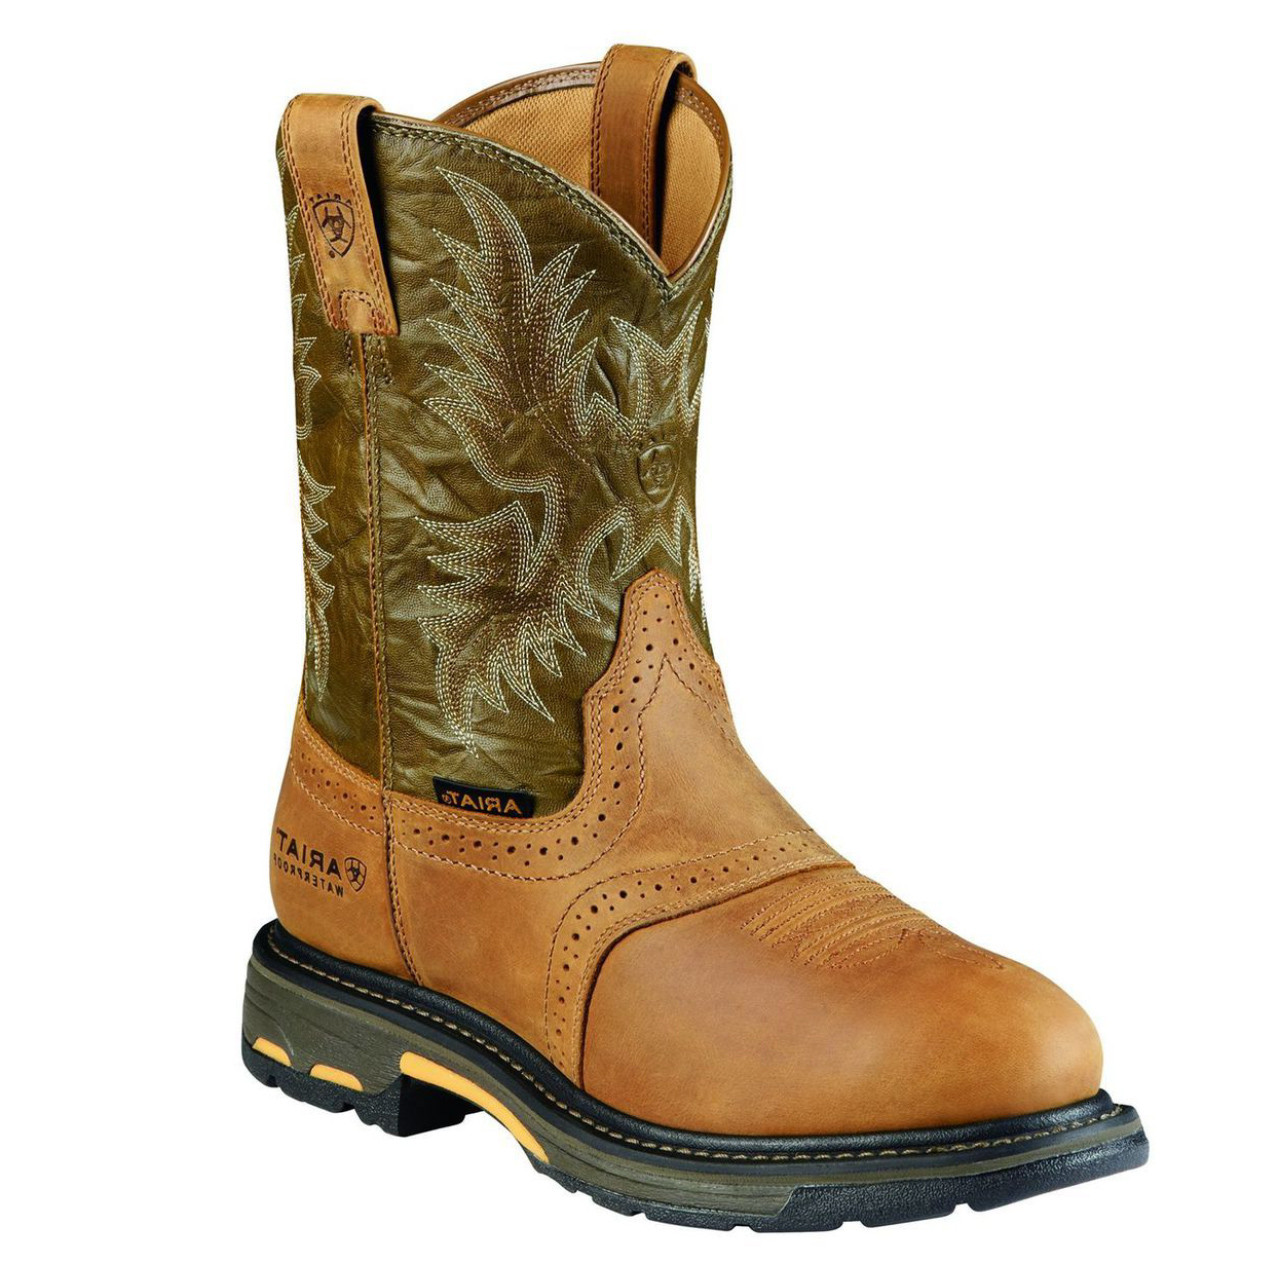 749cb4e78a1 Ariat Men's Workhog Pull-on Waterproof Composite Toe Work Boots - Tan